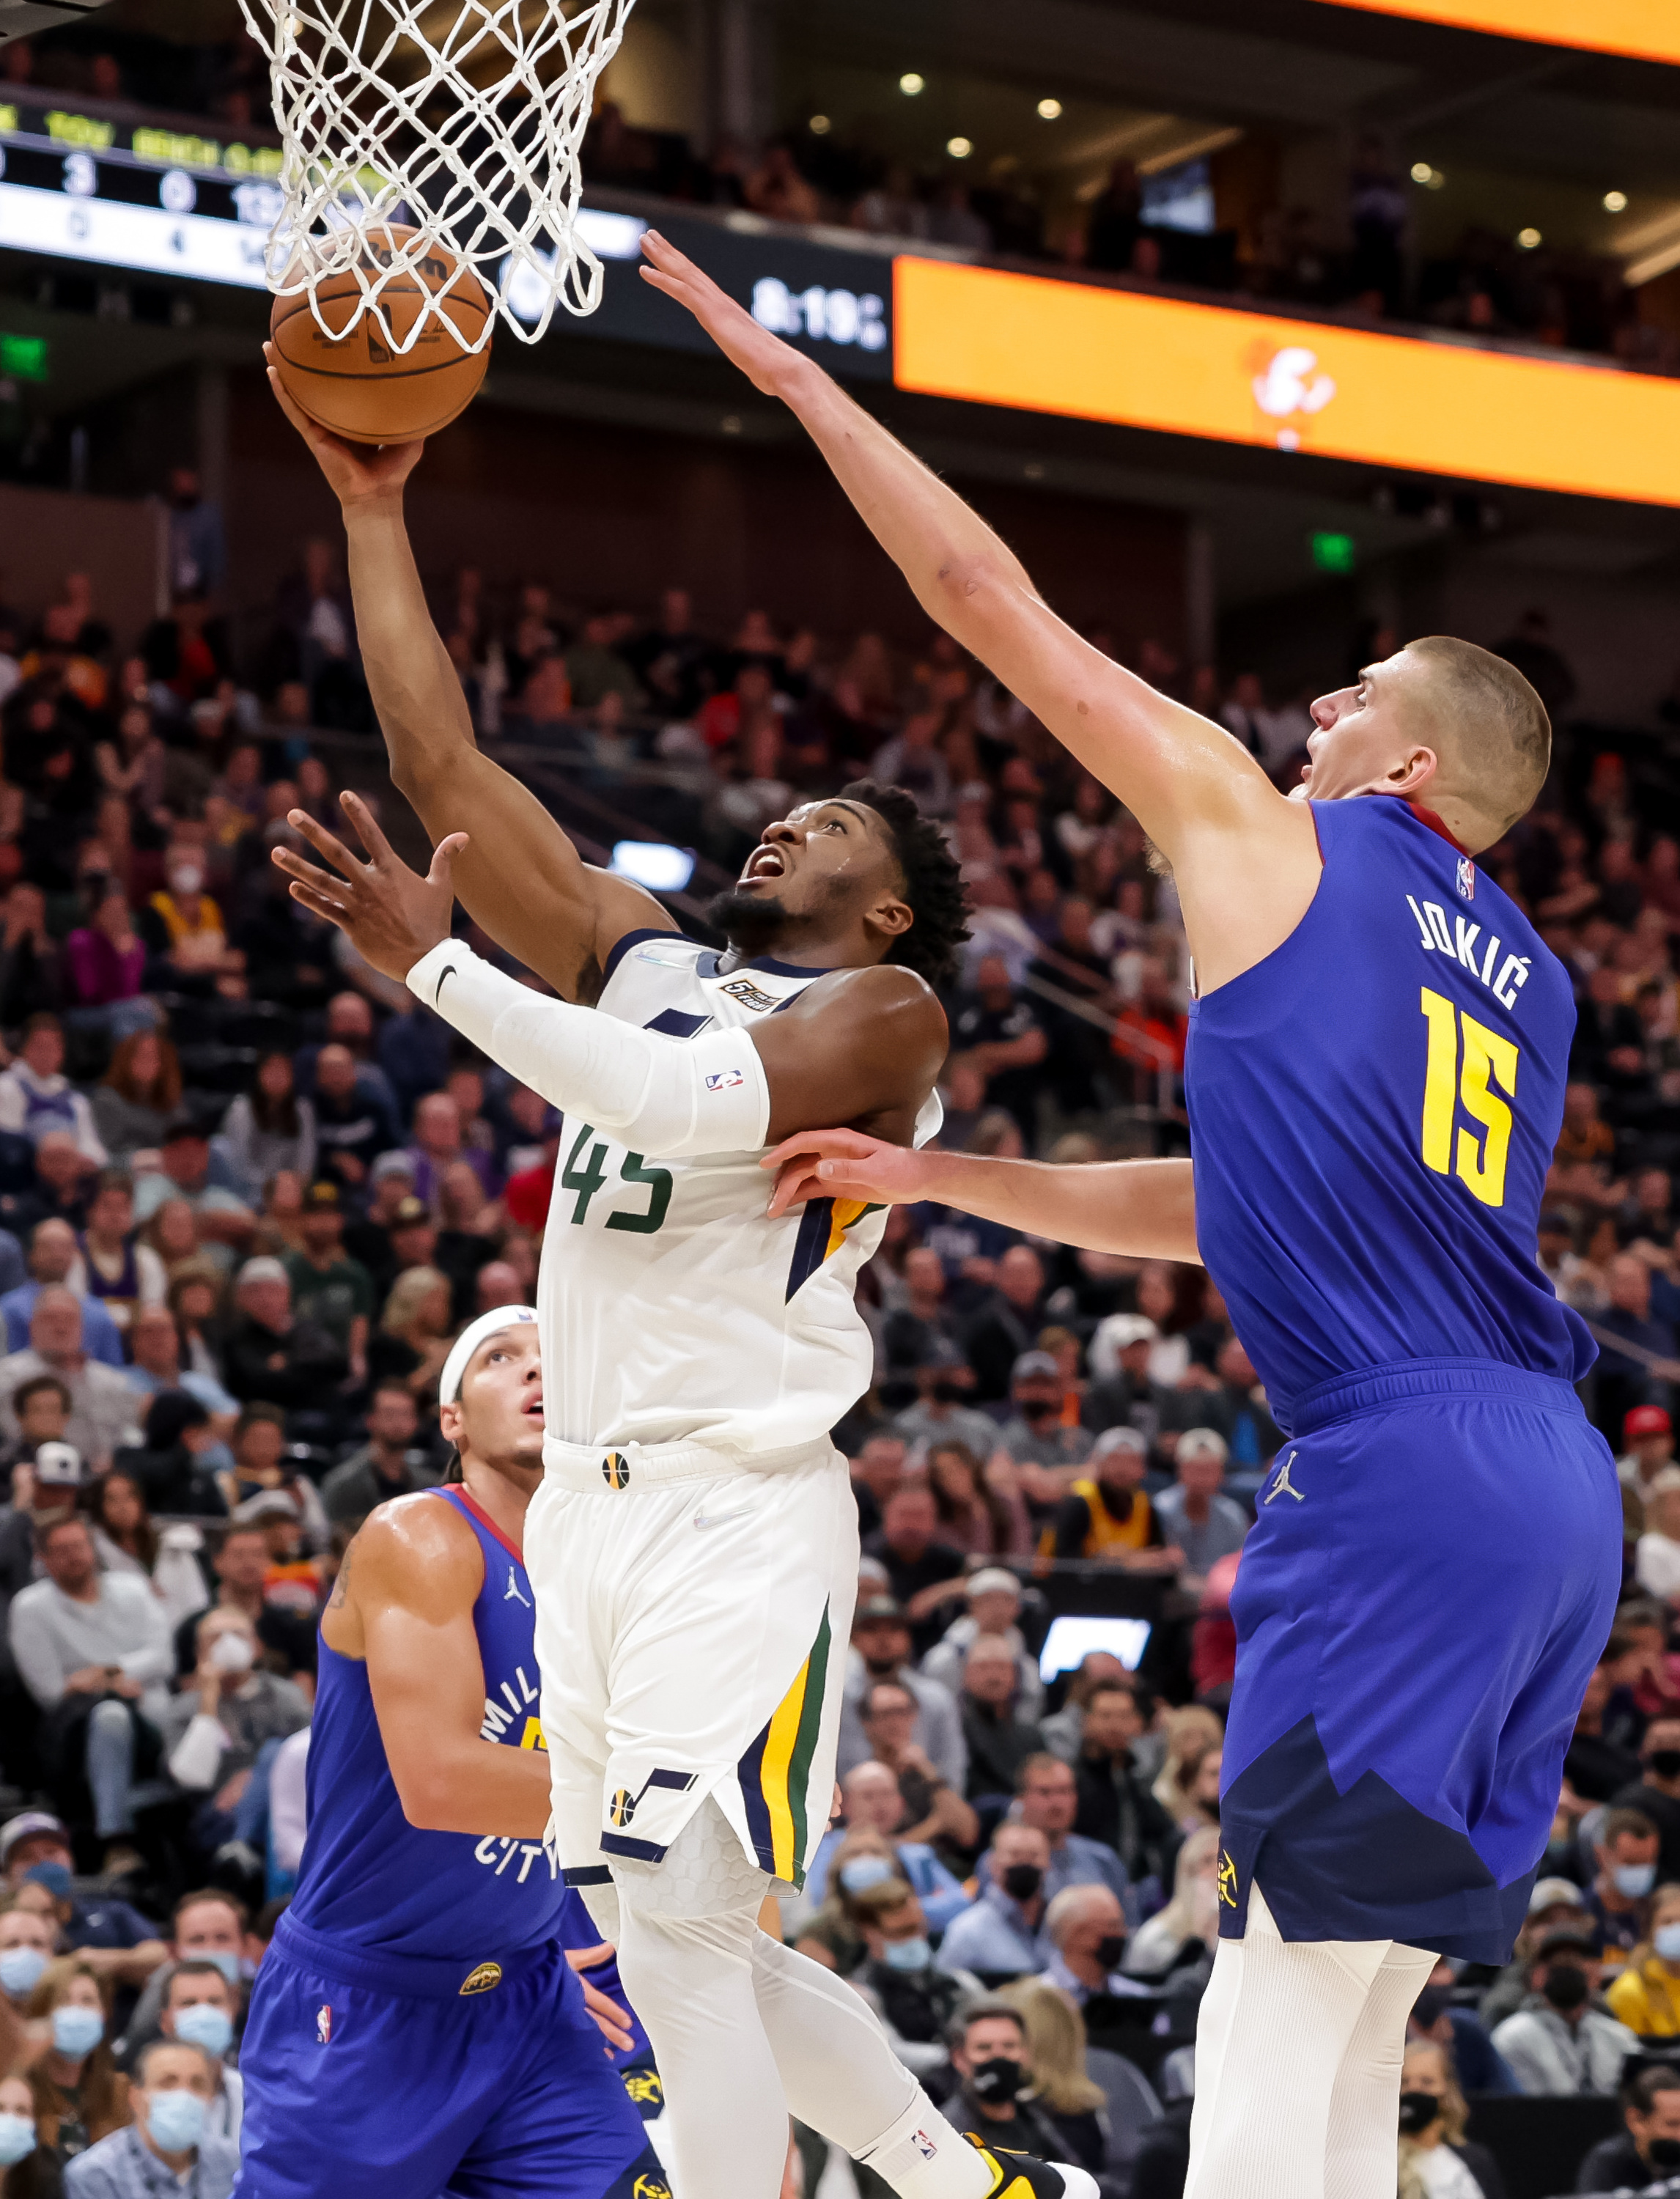 Utah Jazz guard Donovan Mitchell, wearing a white jersey, goes to the hoop ahead of Denver Nuggets center Nikola Jokic, wearing a blue jersey, during the game